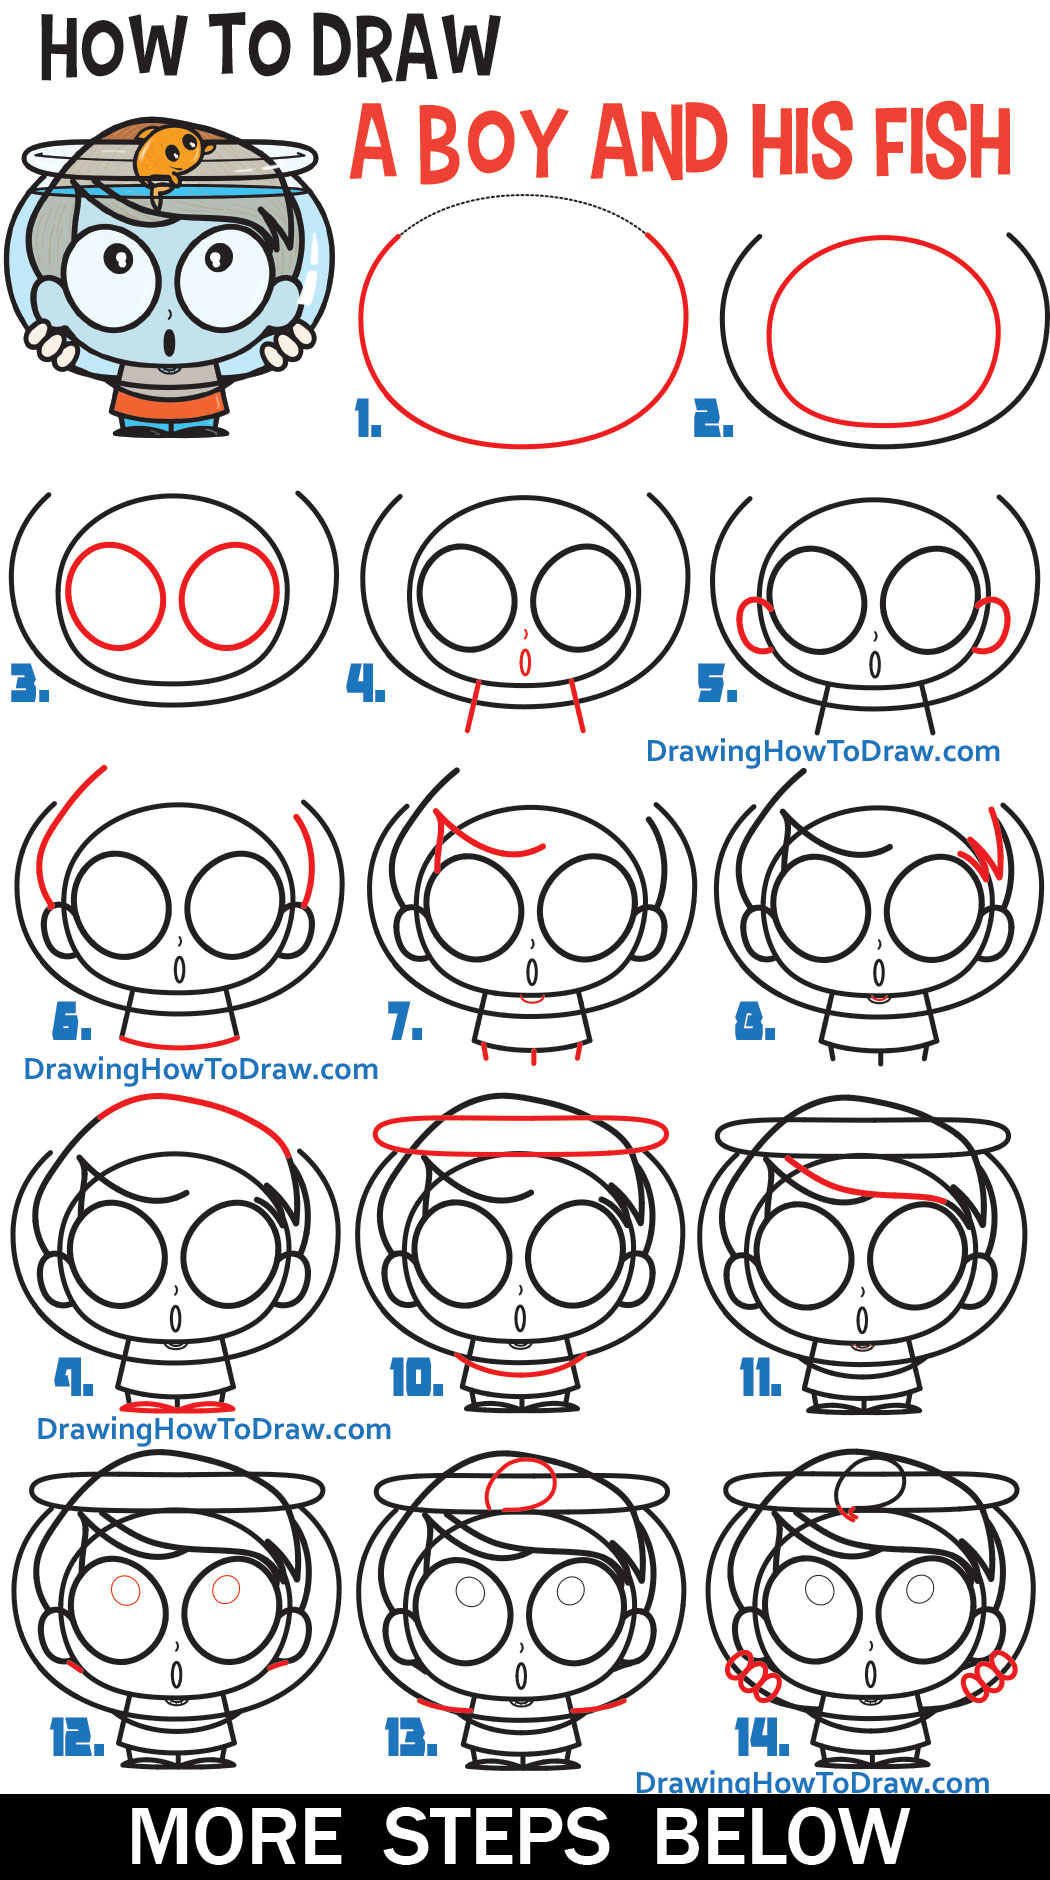 Learn How to Draw a Cute Cartoon Boy Holding a Fish Bowl Easy Step by Step Tutorial for Beginners